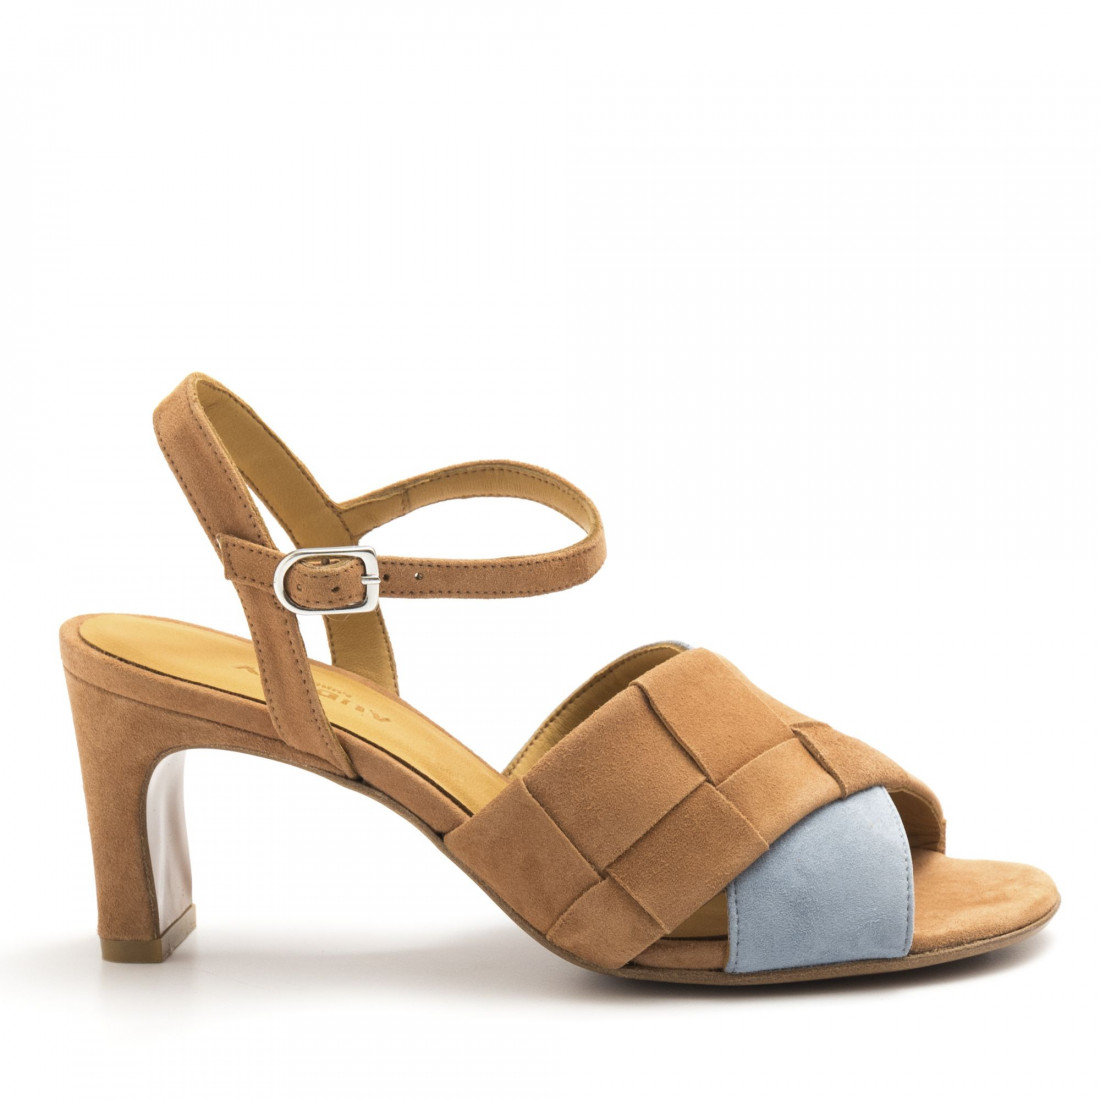 sandals woman audley 20847cosme 4491